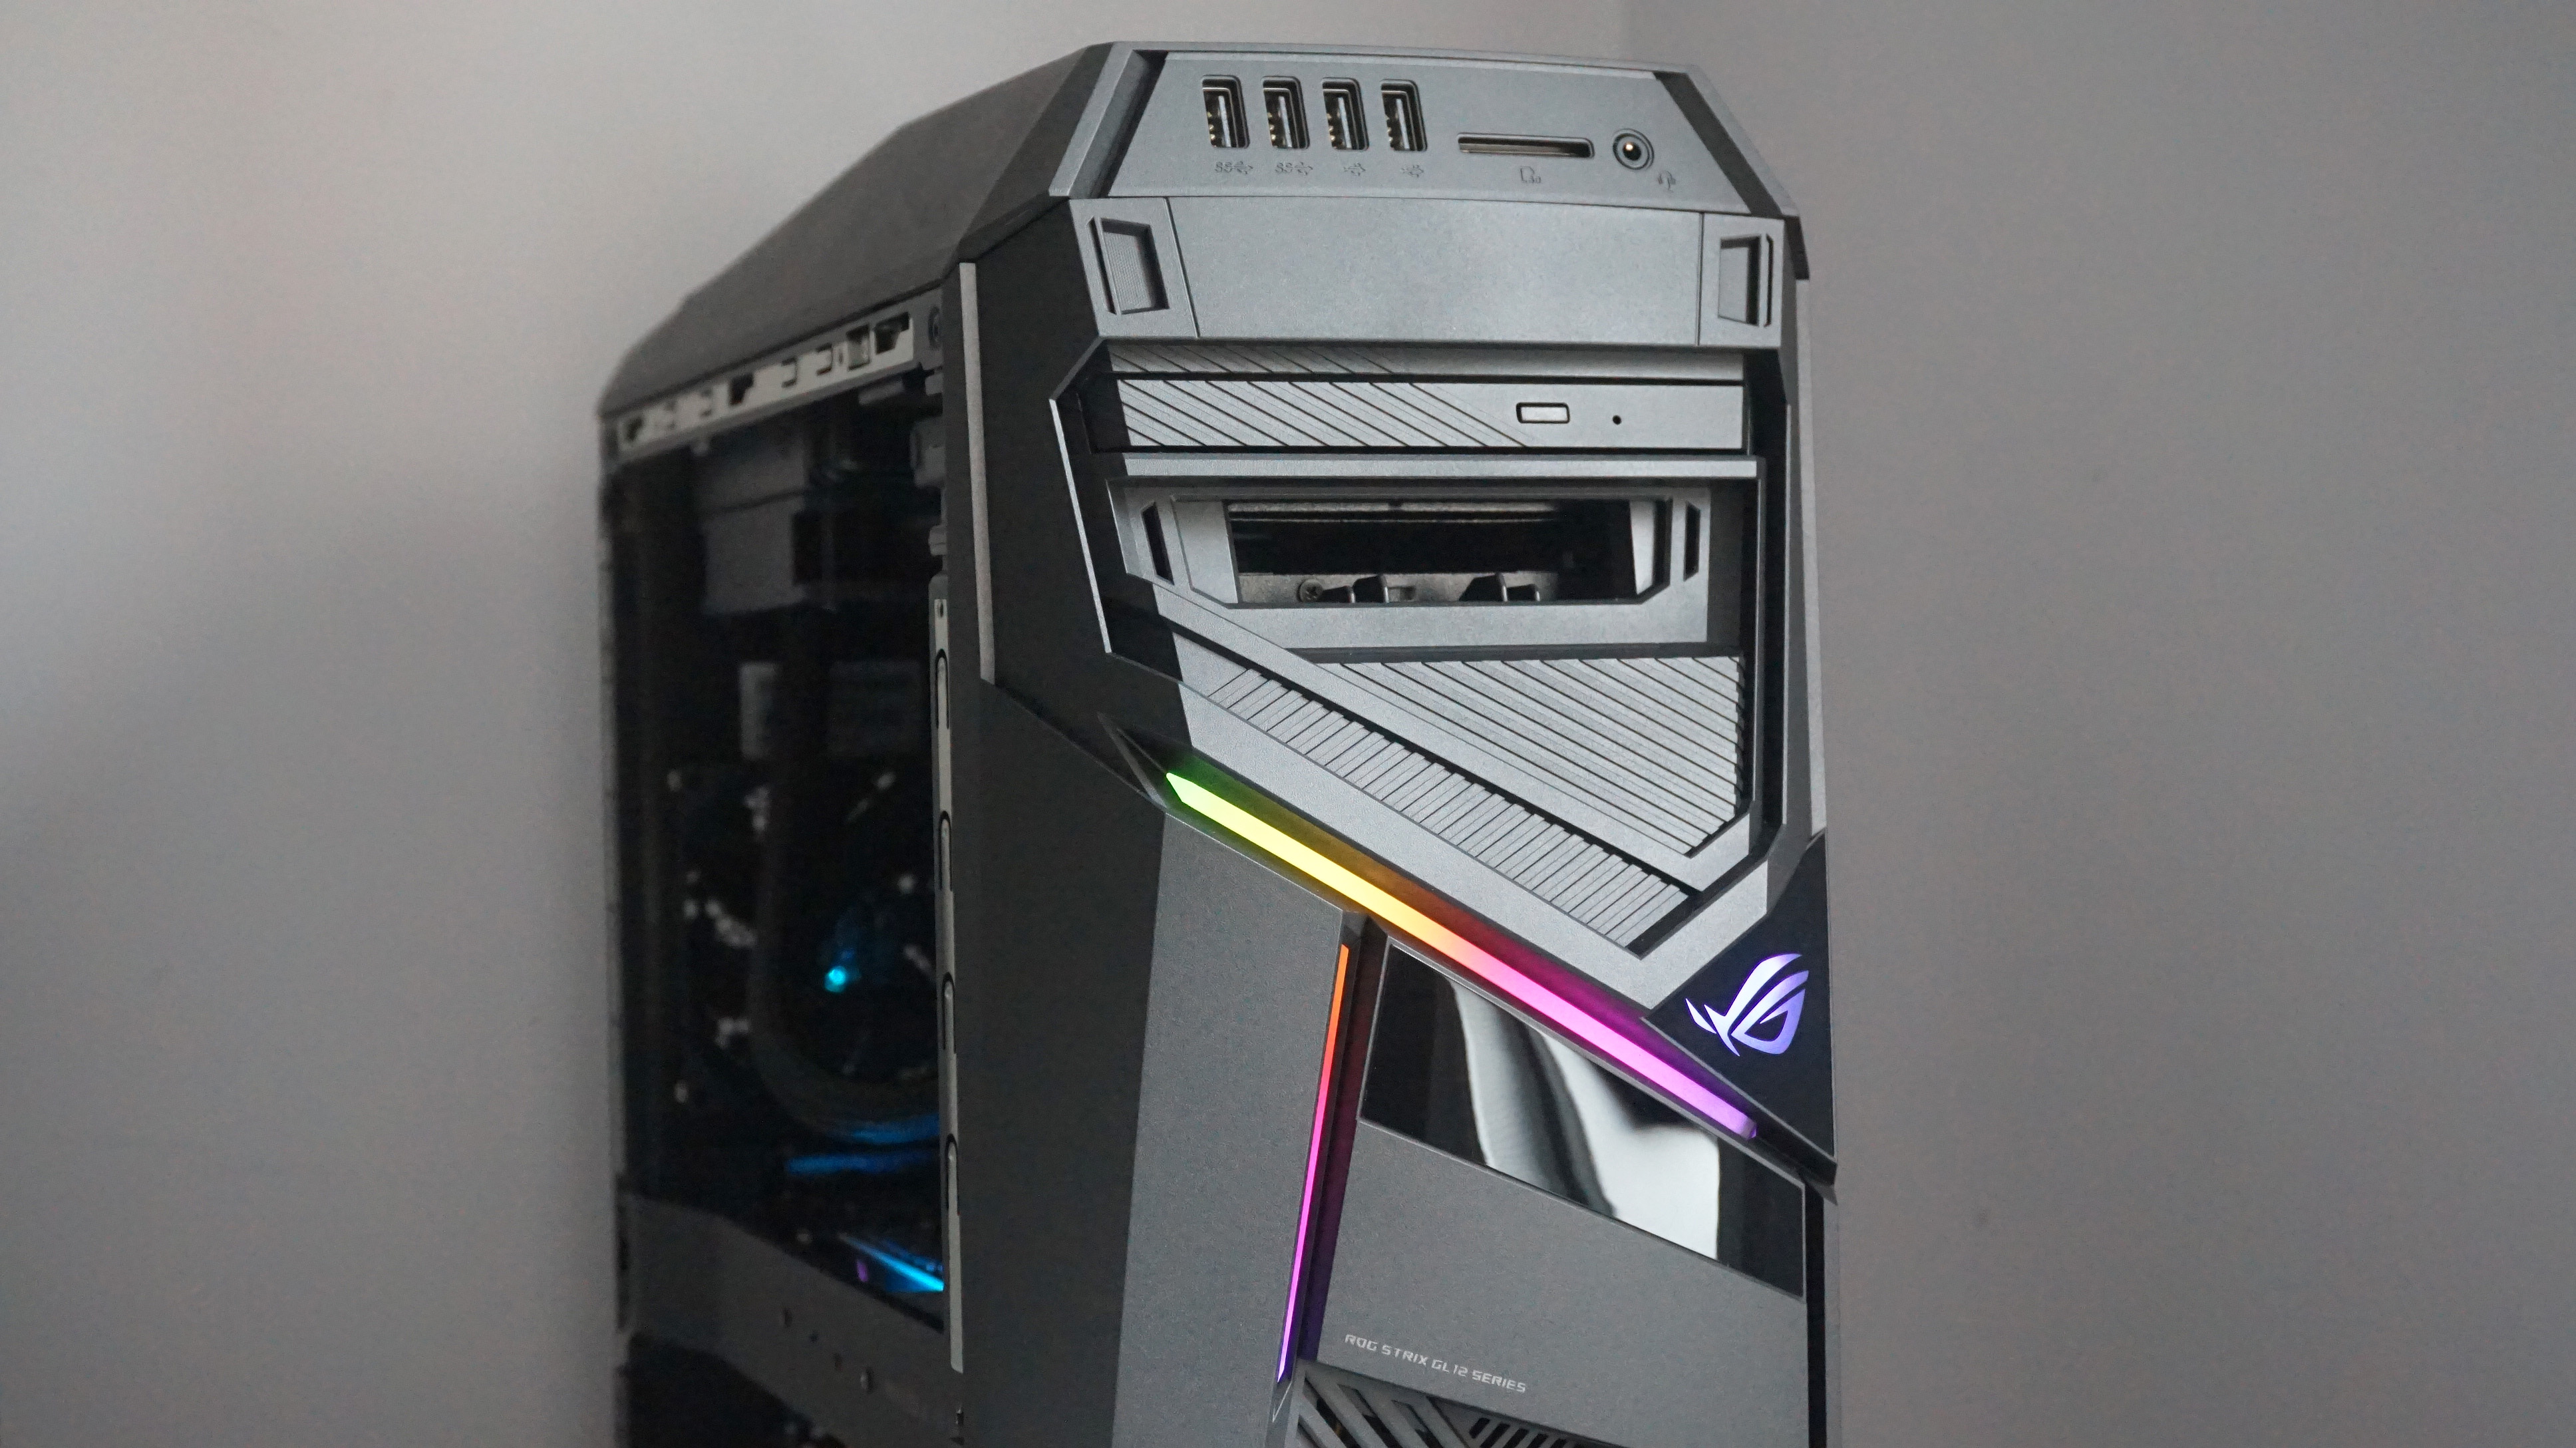 Asus ROG Strix GL12CX review: The Core i9, RTX 2080 monster PC